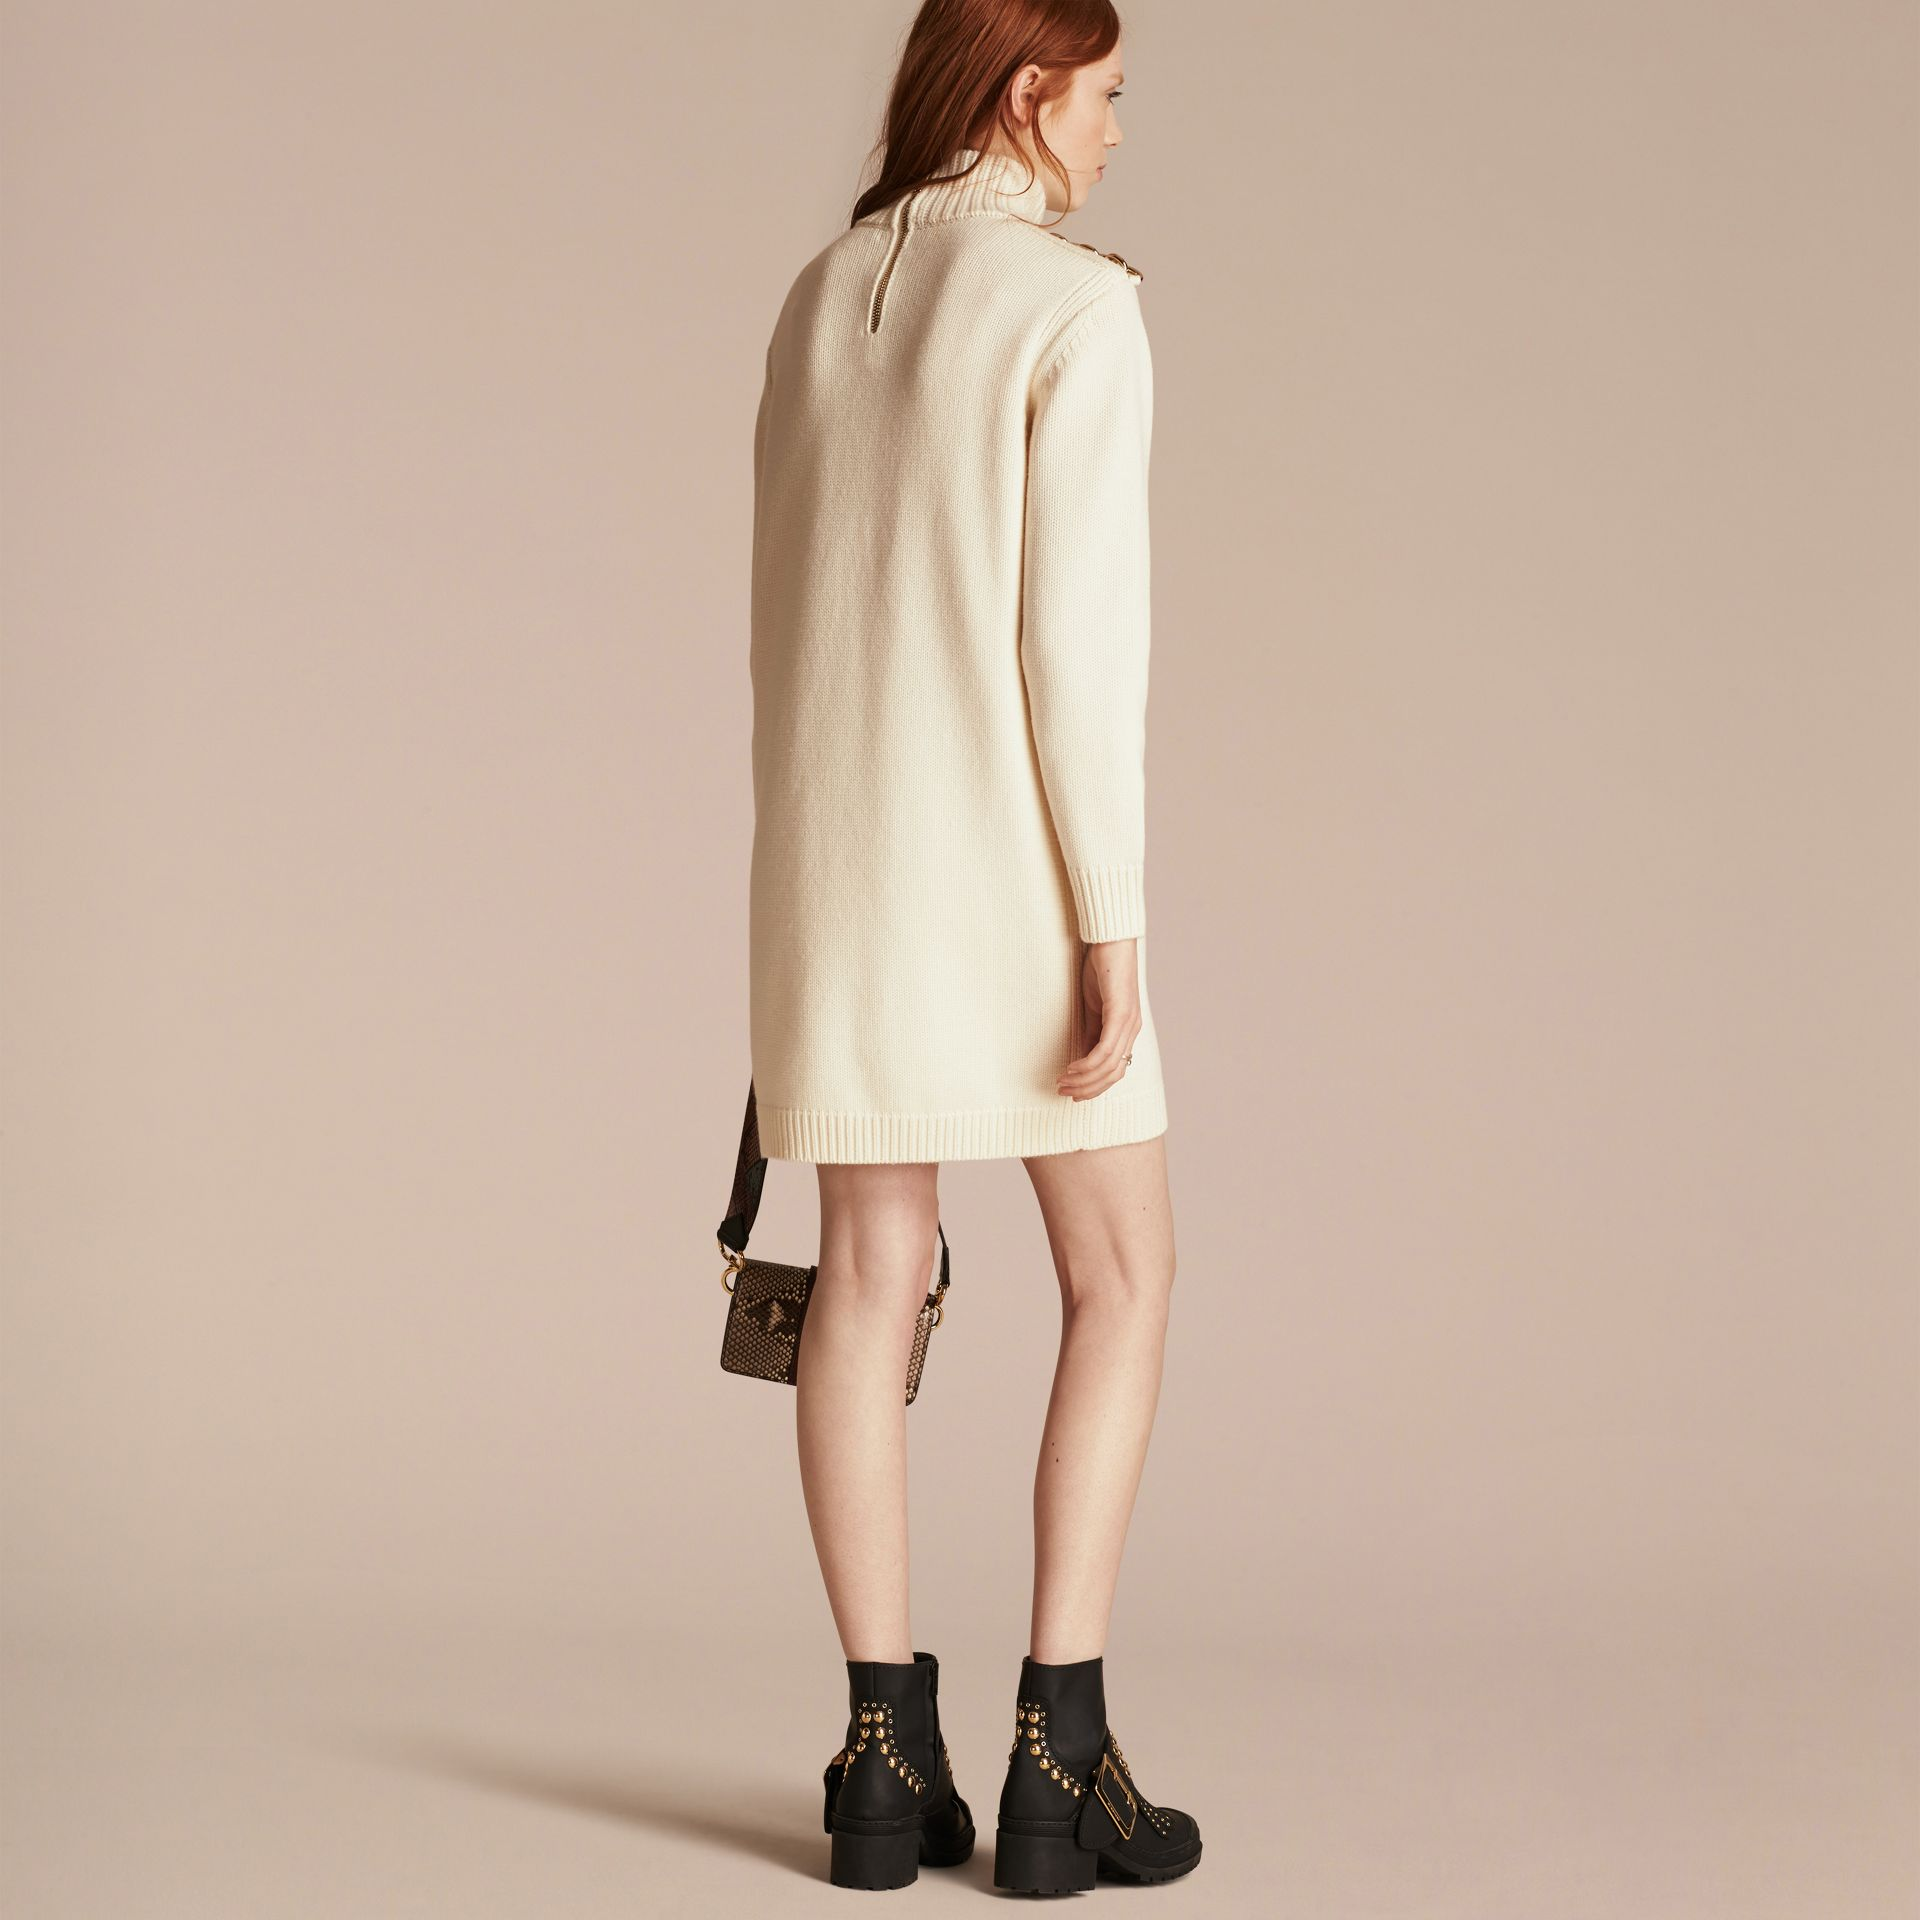 Natural white Chain Detail Wool Cashmere High-neck Dress Natural White - gallery image 3